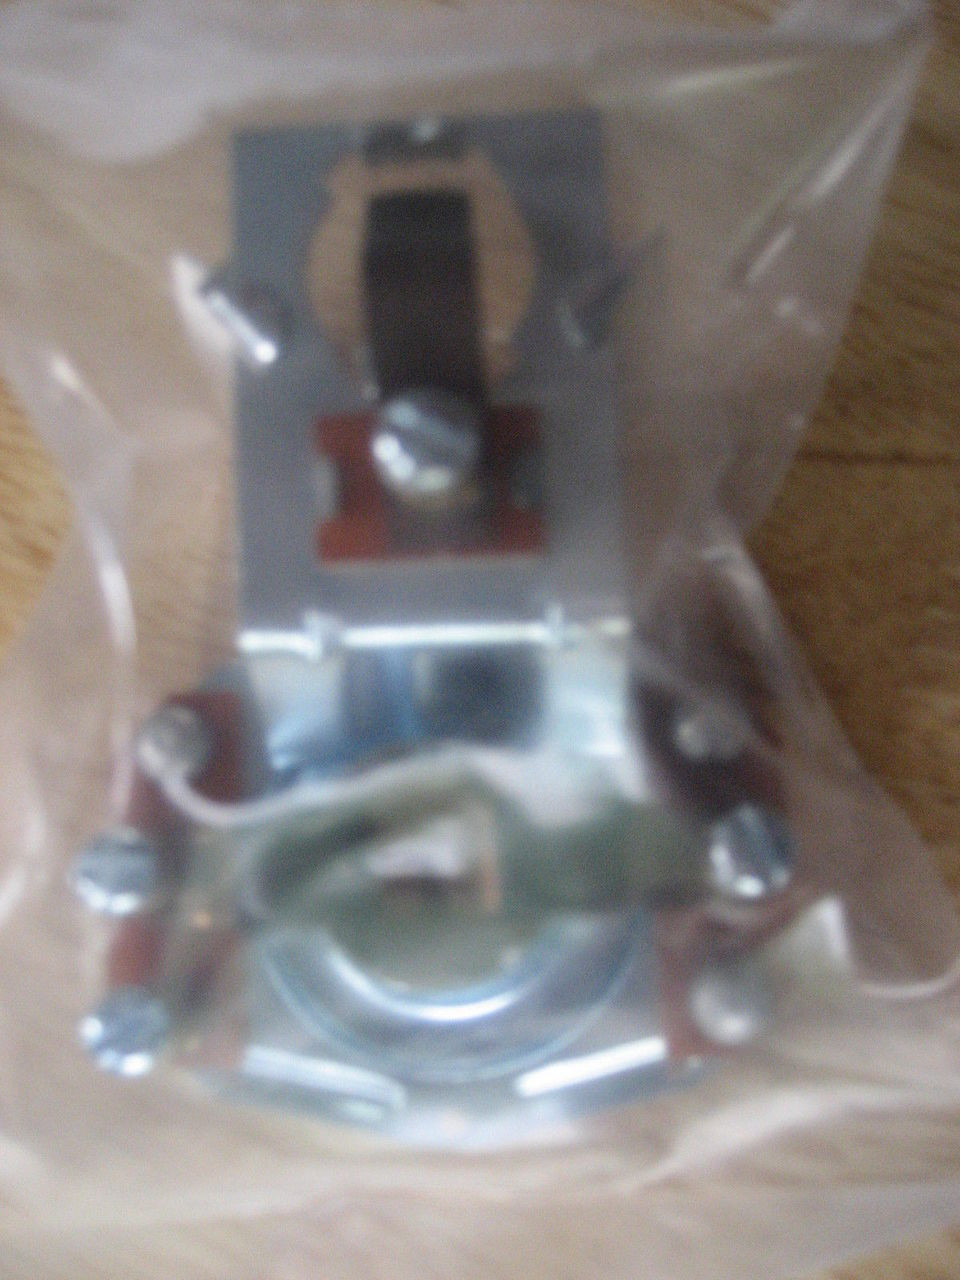 VINTAGE BMW /2 COFFECAN TAIL LIGHT BULB HOLDER NEW IN PACKAGE R26-R69S - 63 24 8 054 130